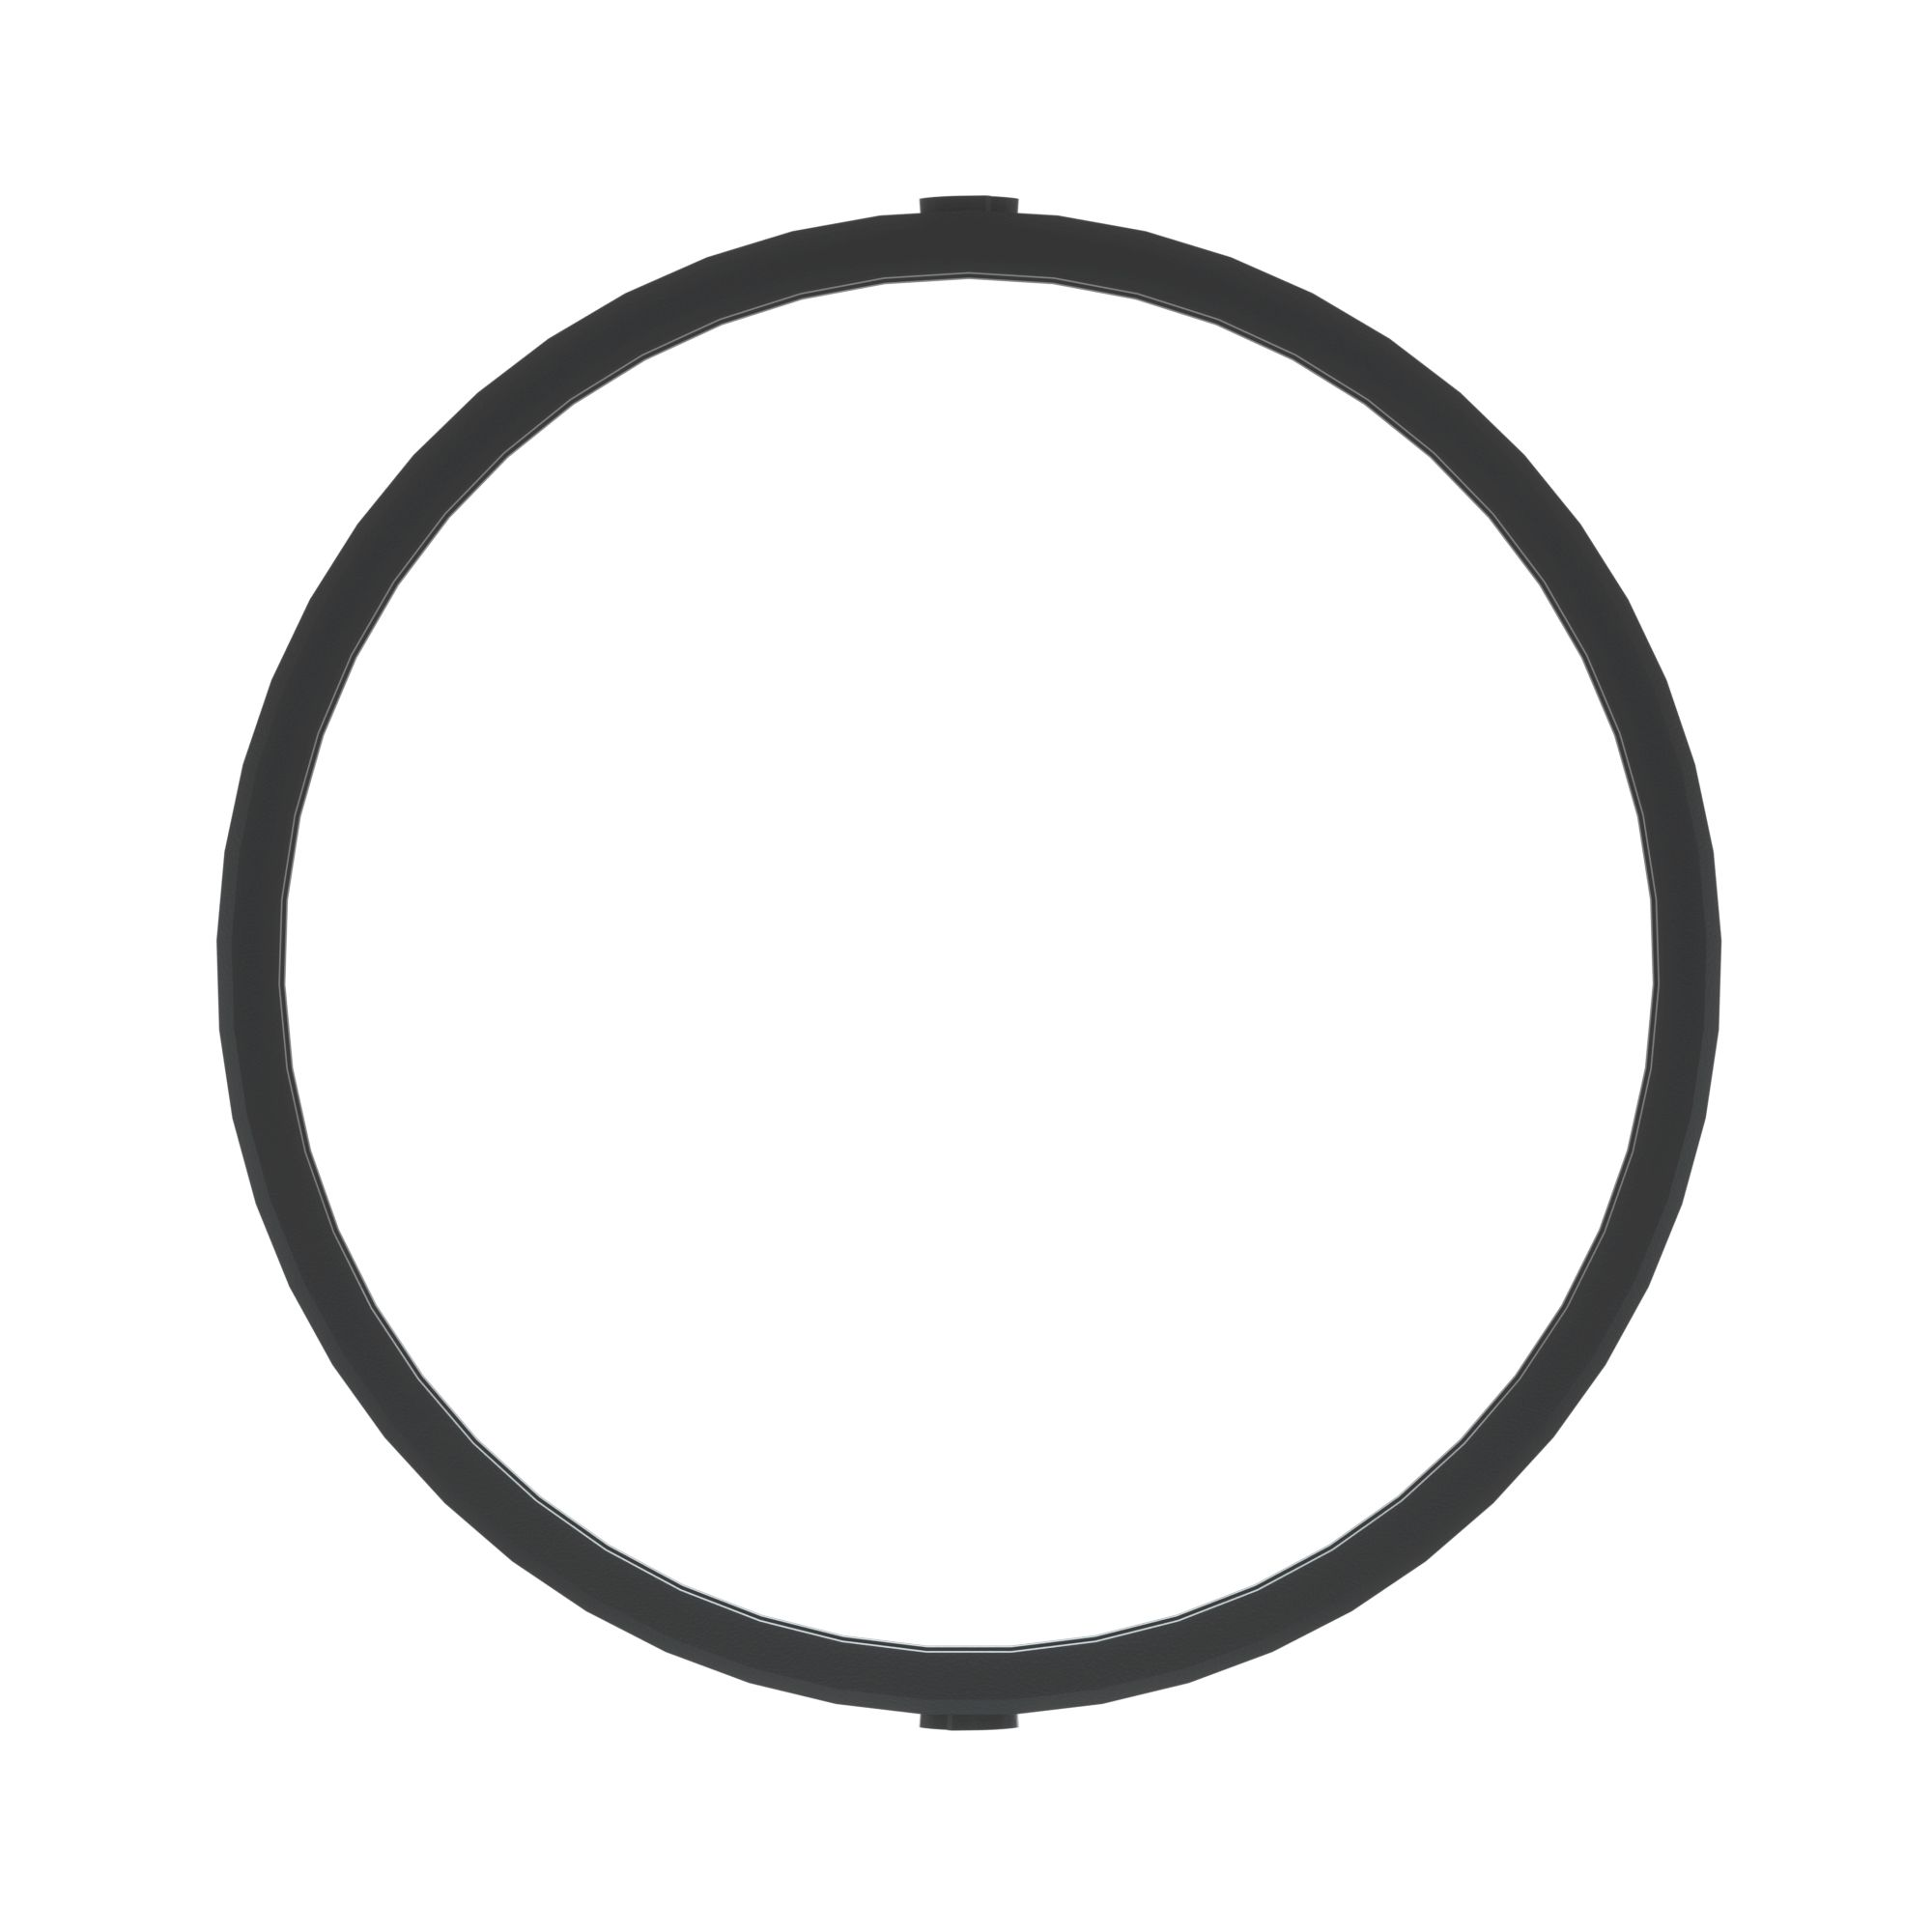 RAAS Silicone ring